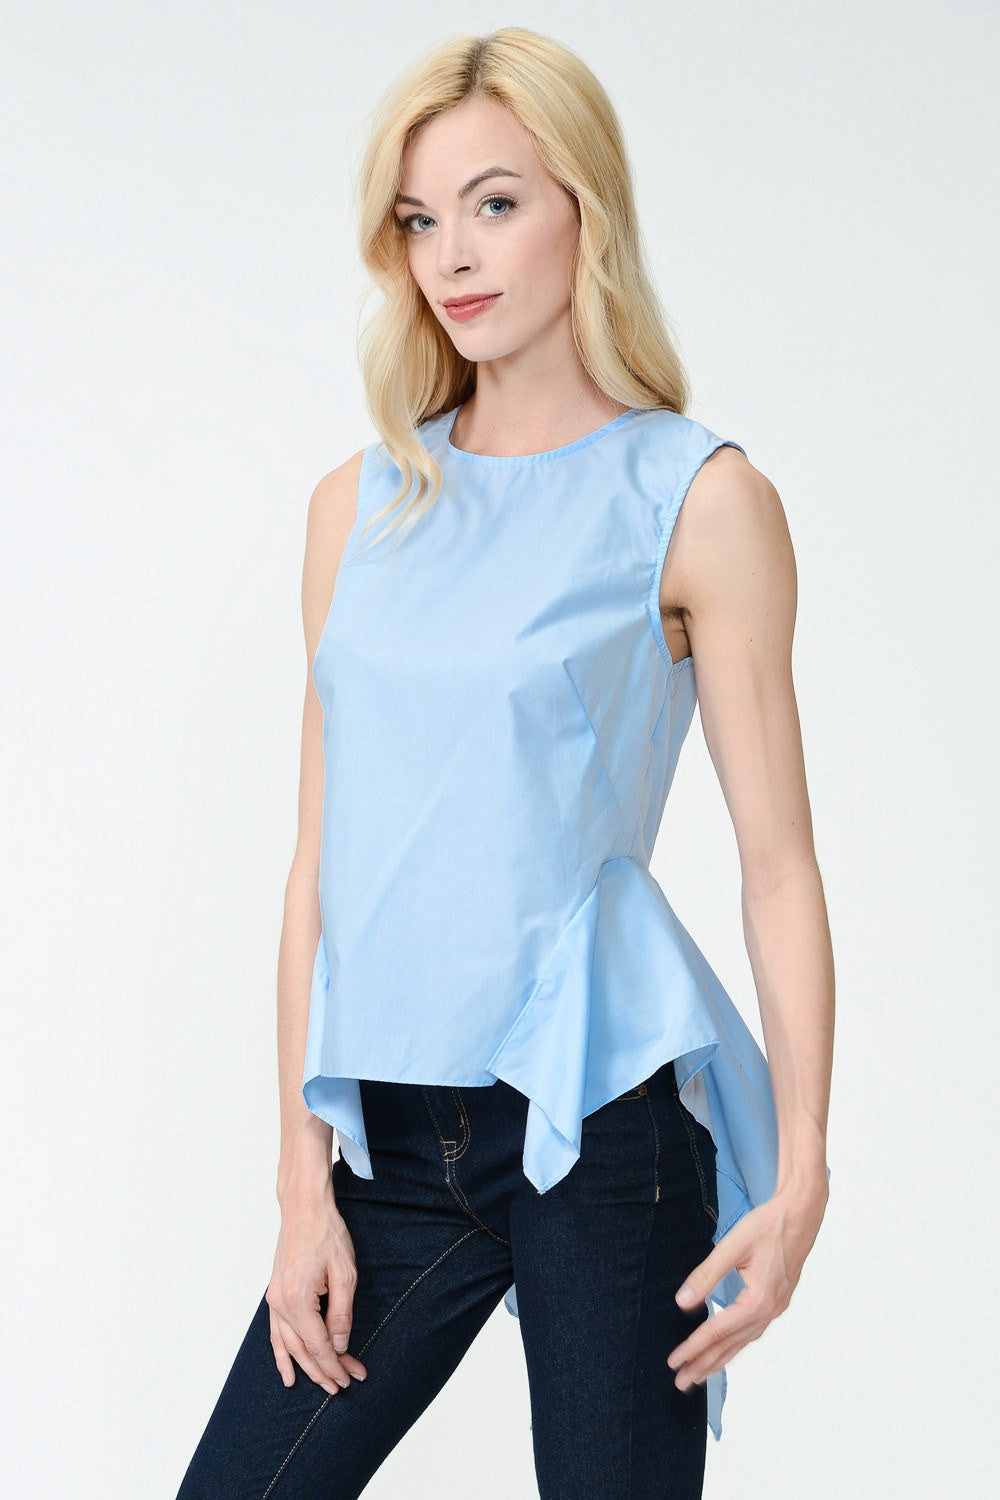 Back Tail Sleeveless Dress in light blue from The Closet Laboratory. Women's Fashion and Apparel.